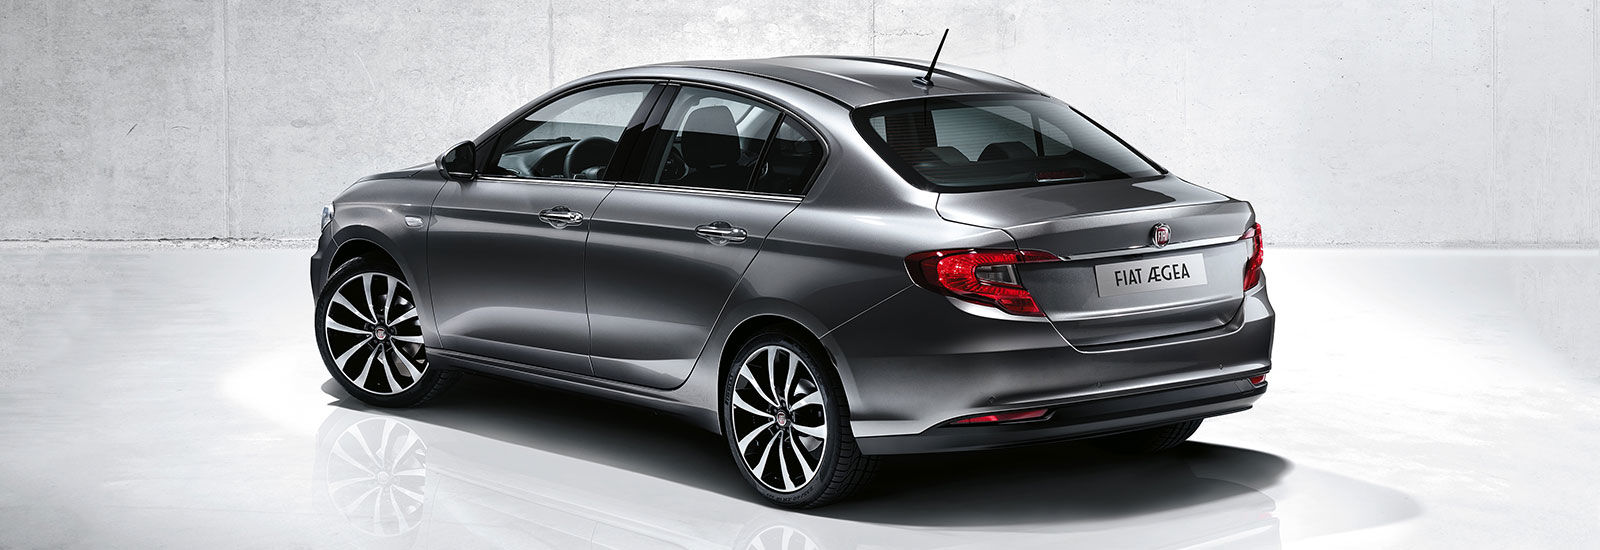 2016 fiat tipo price specs and release date carwow. Black Bedroom Furniture Sets. Home Design Ideas